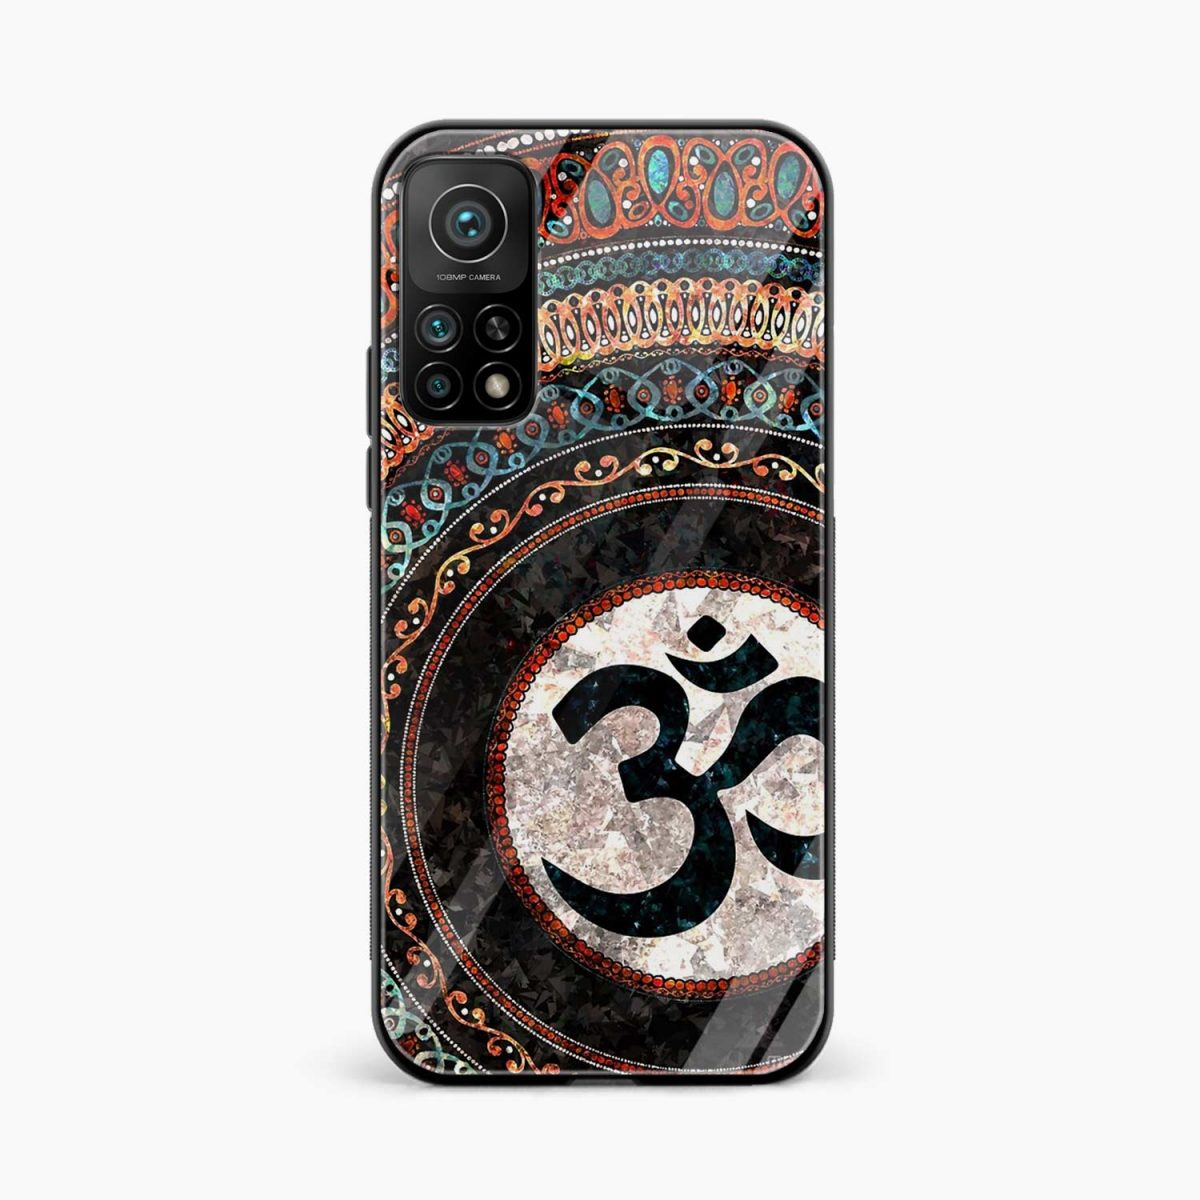 om glass xiaomi mi 10t pro back cover front view